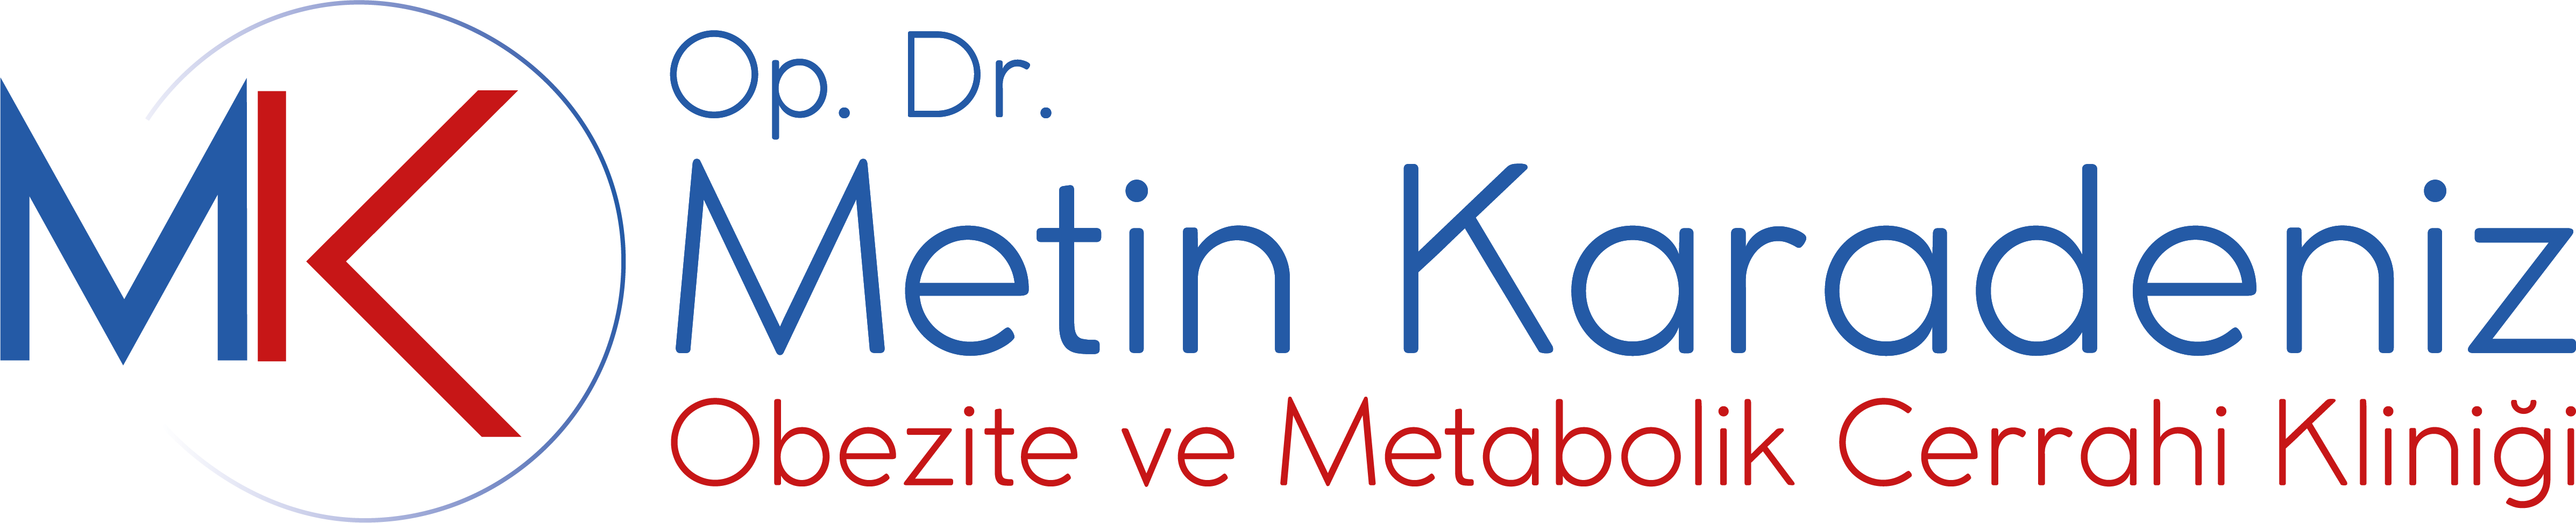 Dr. Metin Karadeniz Obesity And Metabolic Surgery Center Logo